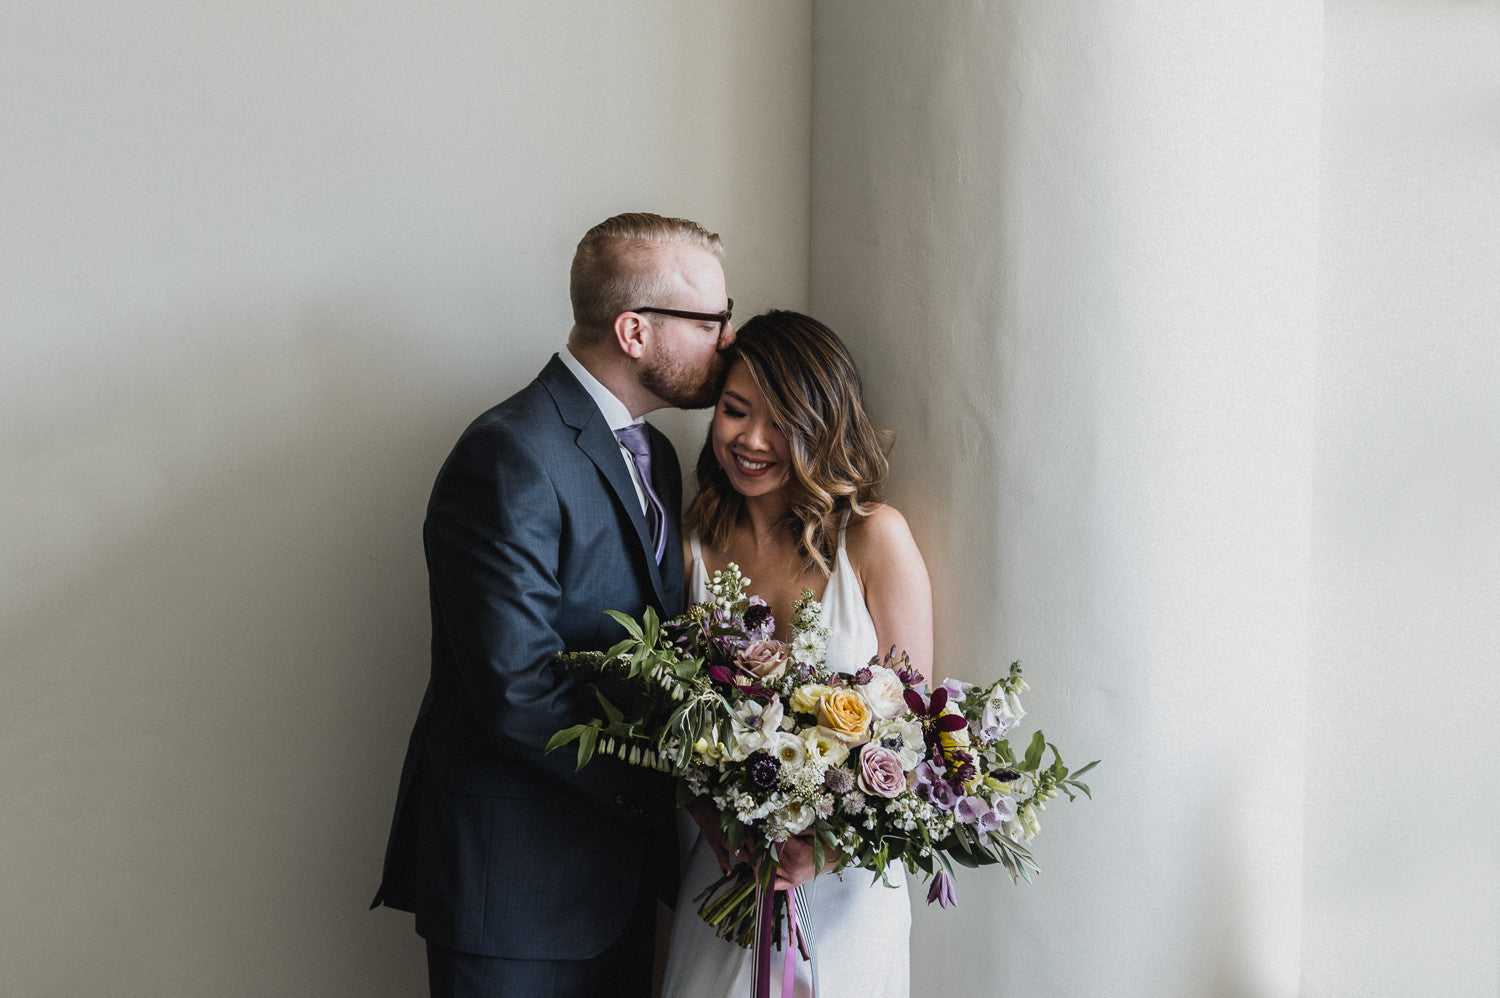 Jennifer Moher Photography - Intimate Toronto Wedding